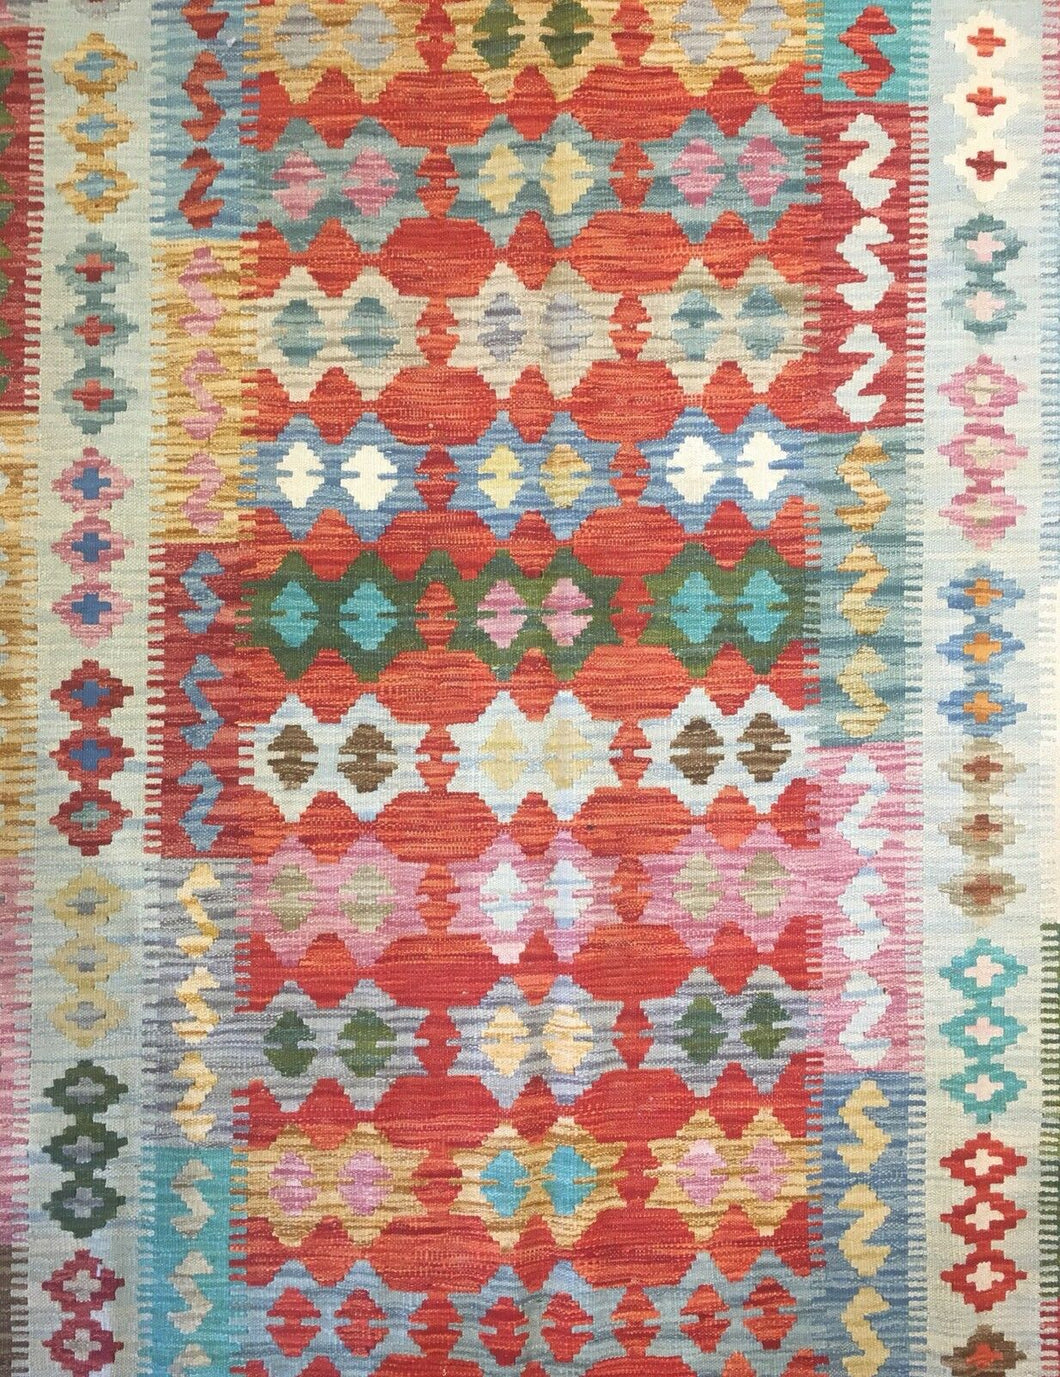 Crisp Colorful - New Kilim Rug - Flatweave Tribal Carpet - 5'1